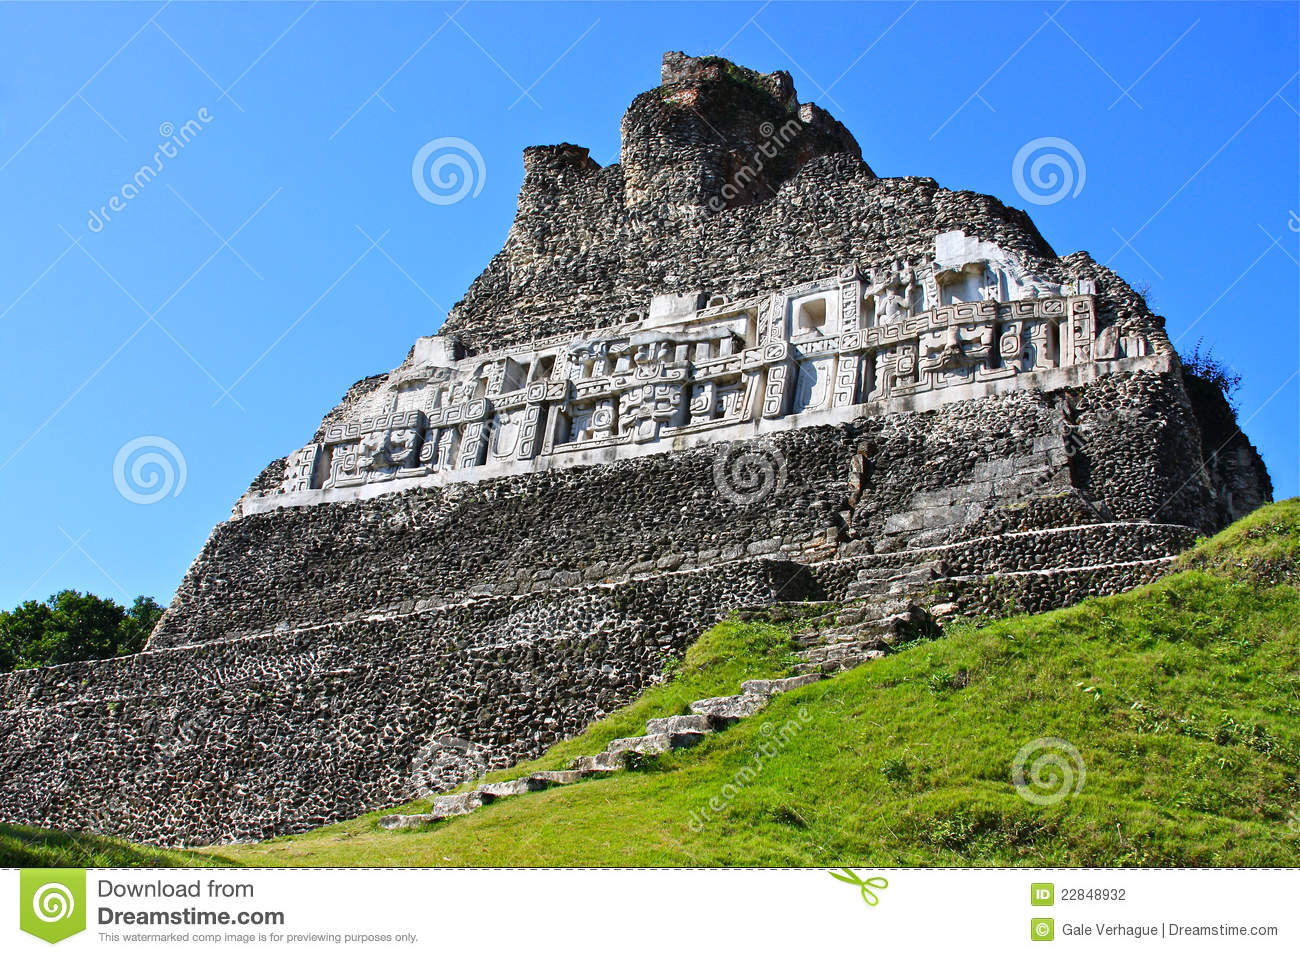 Beirut moreover Anime Desert in addition Index php together with Stock Photography Mayan Temple Ruins Xunantunich Image22848932 in addition File Mohenjodaro   view of the stupa mound. on ruins background